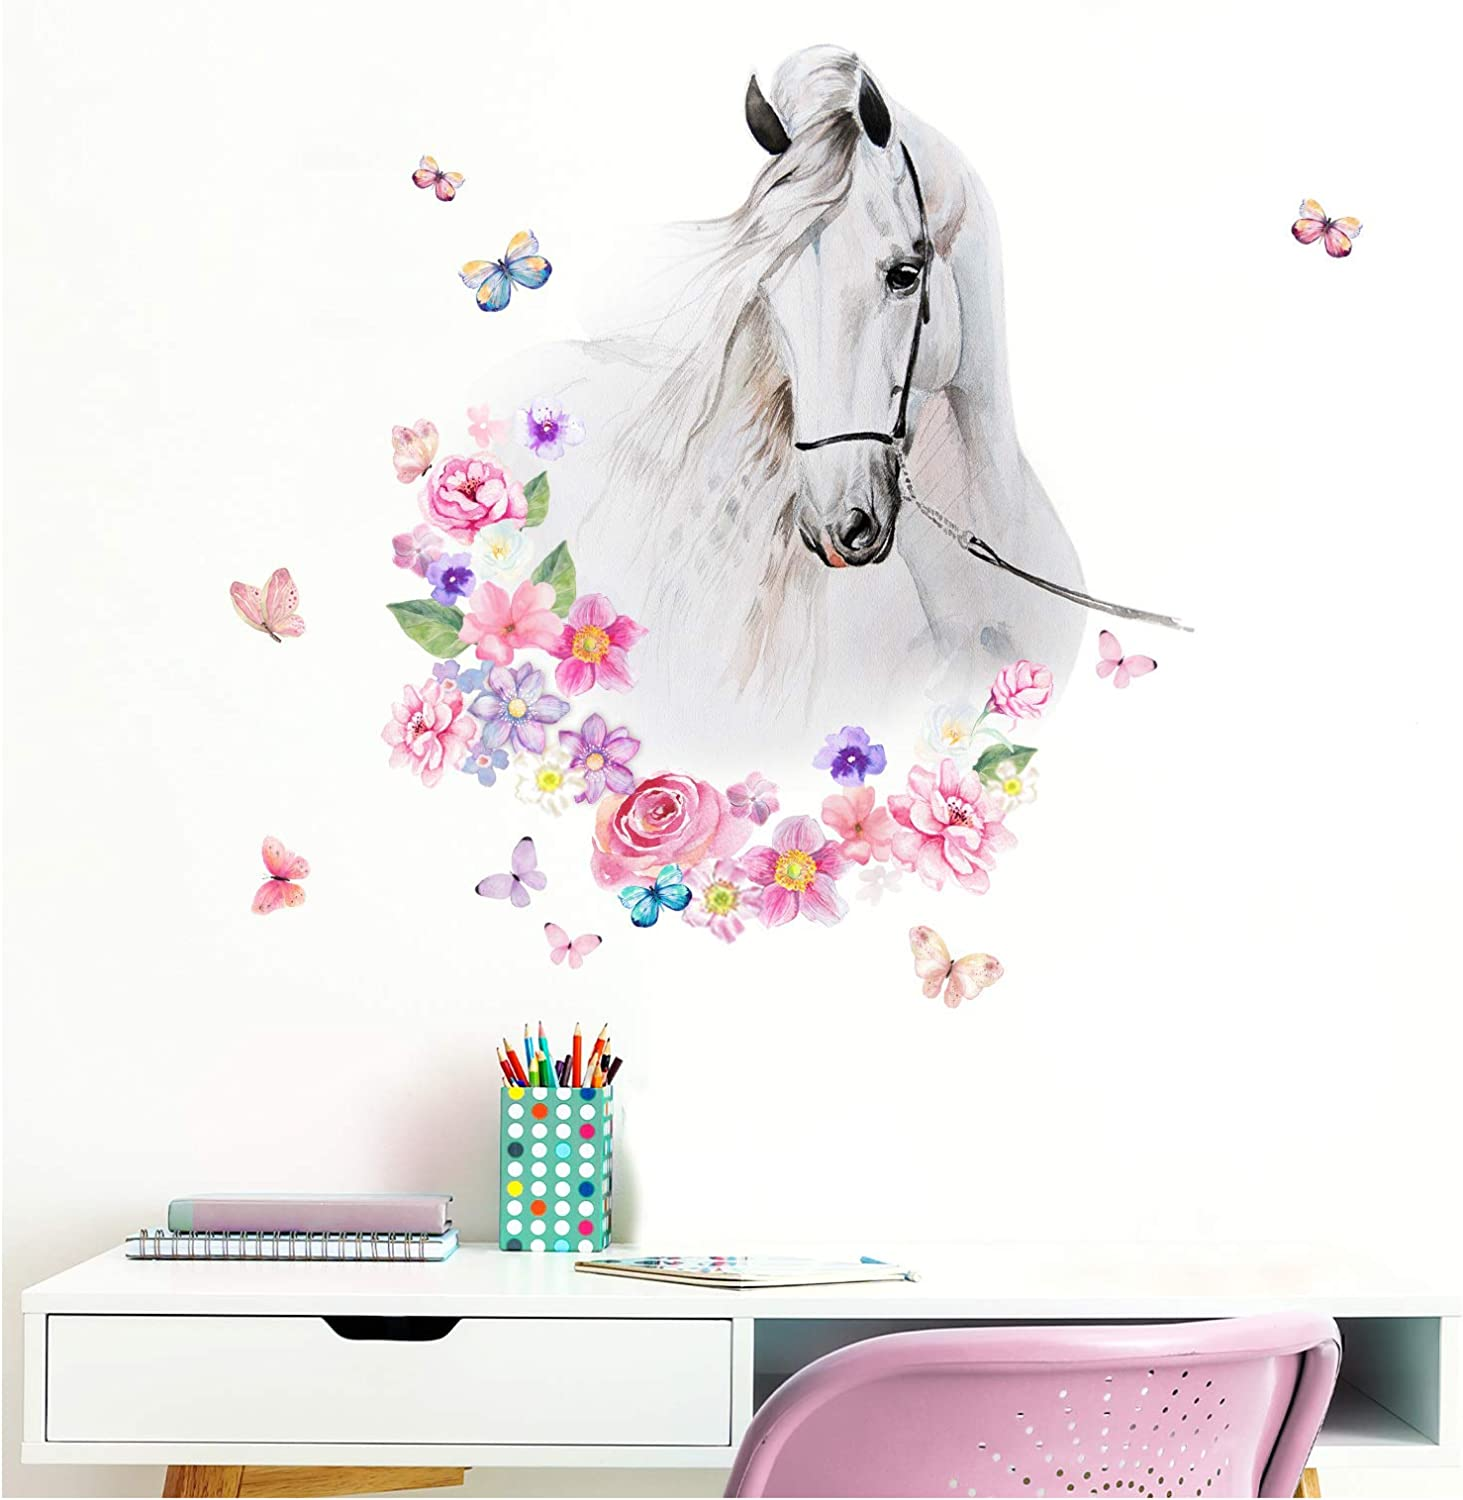 Little Deco DL464 - Adhesivo decorativo para pared, diseño de cabeza de caballo con flores y mariposas